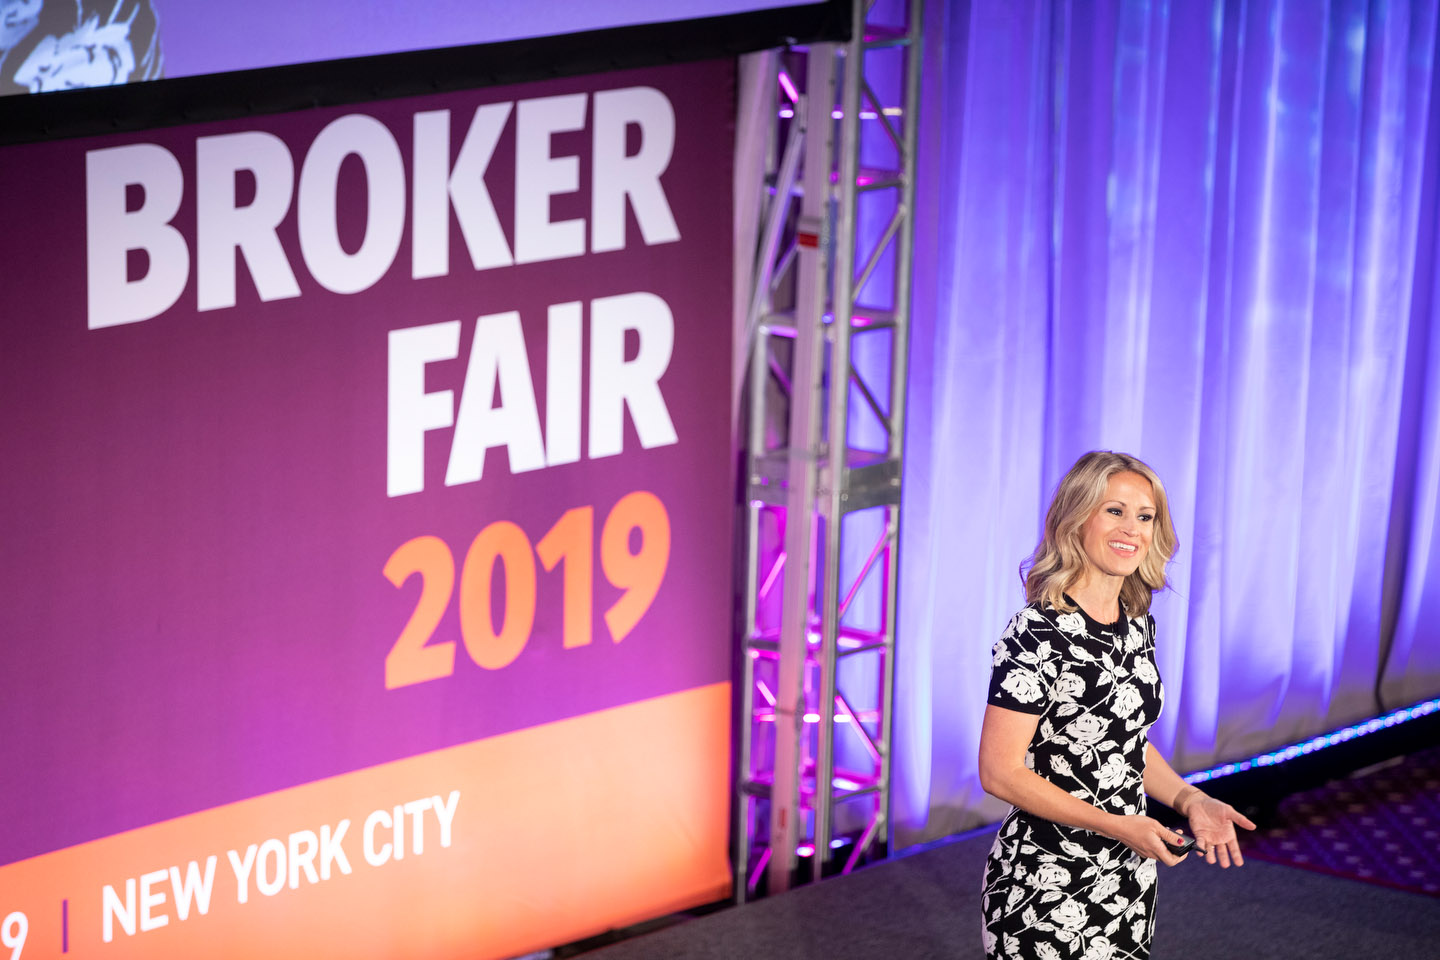 Broker Fair 2019 - Presented by deBanked - 370